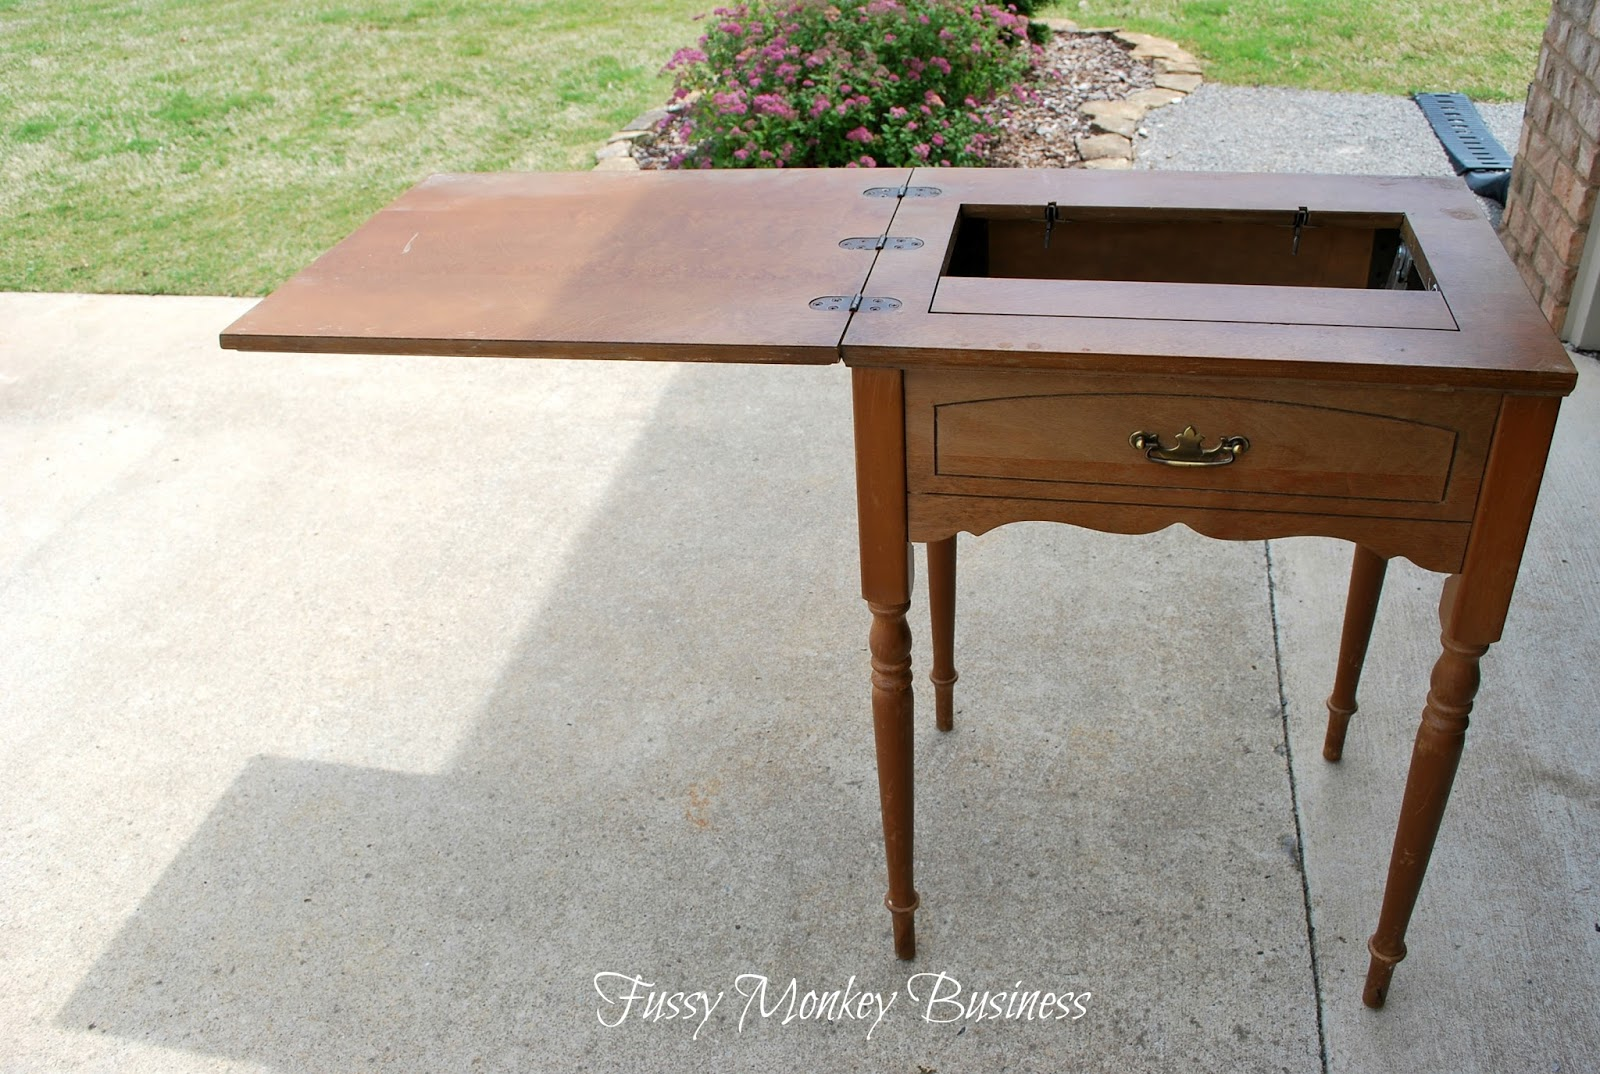 fussy monkey business old sewing machine table turned outdoor planter. Black Bedroom Furniture Sets. Home Design Ideas